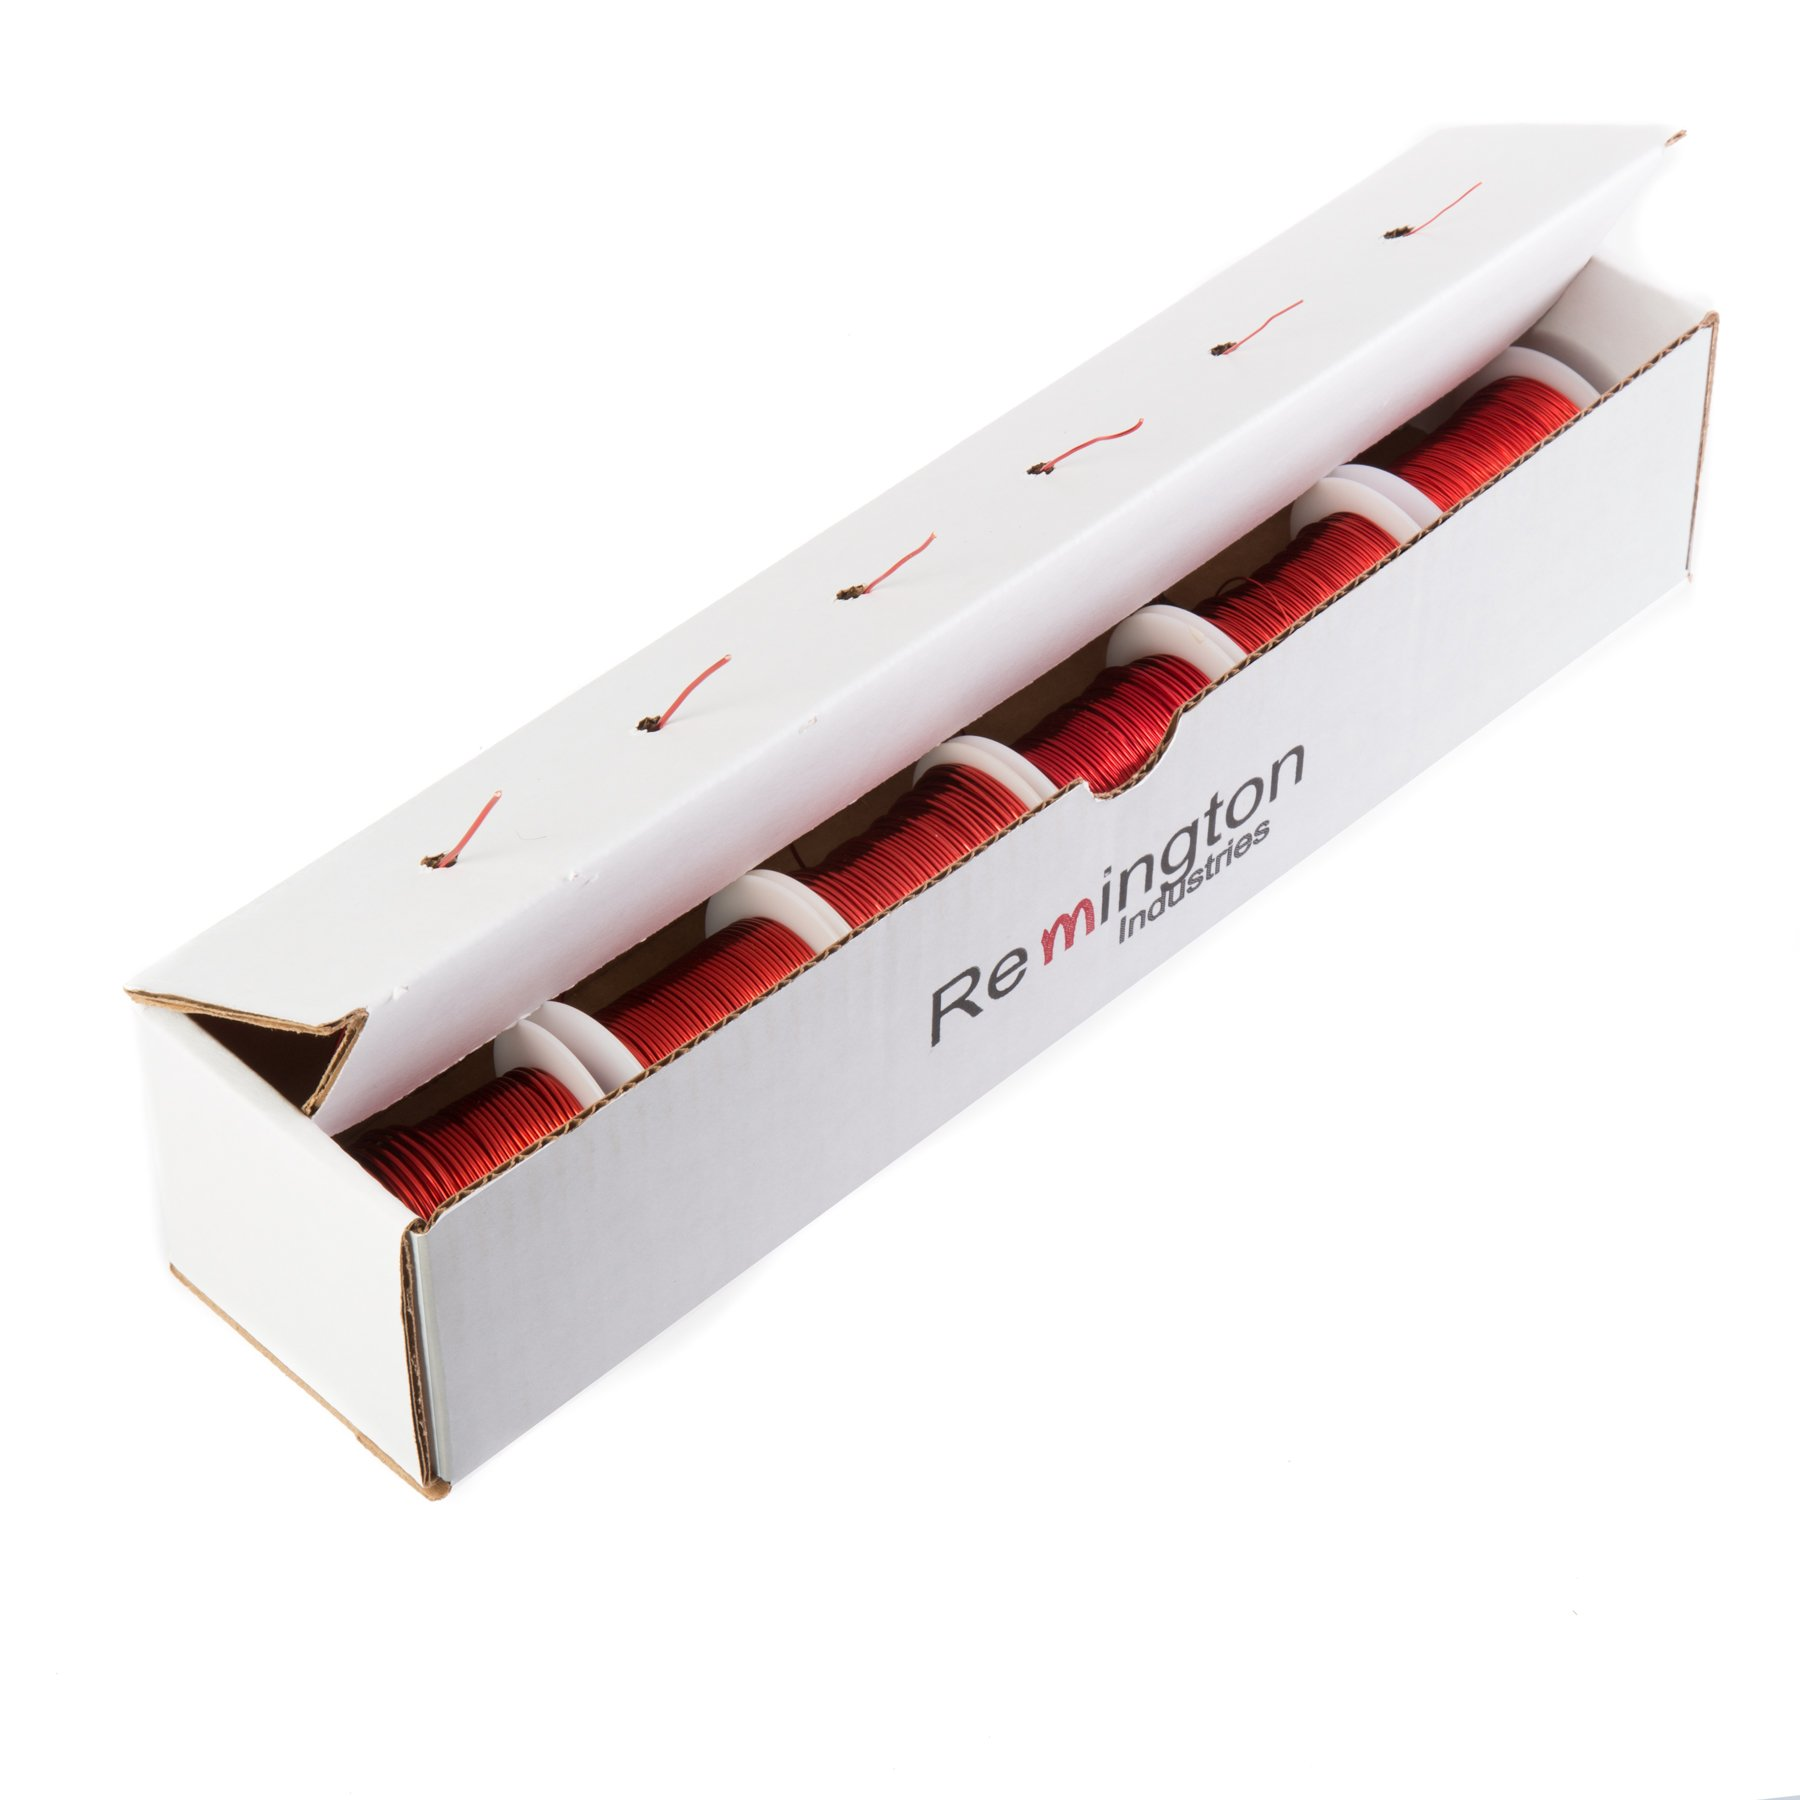 Remington Industries 1424MWKIT.25 Magnet Wire Kit, Enameled Copper Wire, 14, 16, 18, 20, 22, 24 AWG, 4 oz Each, Red by Remington Industries